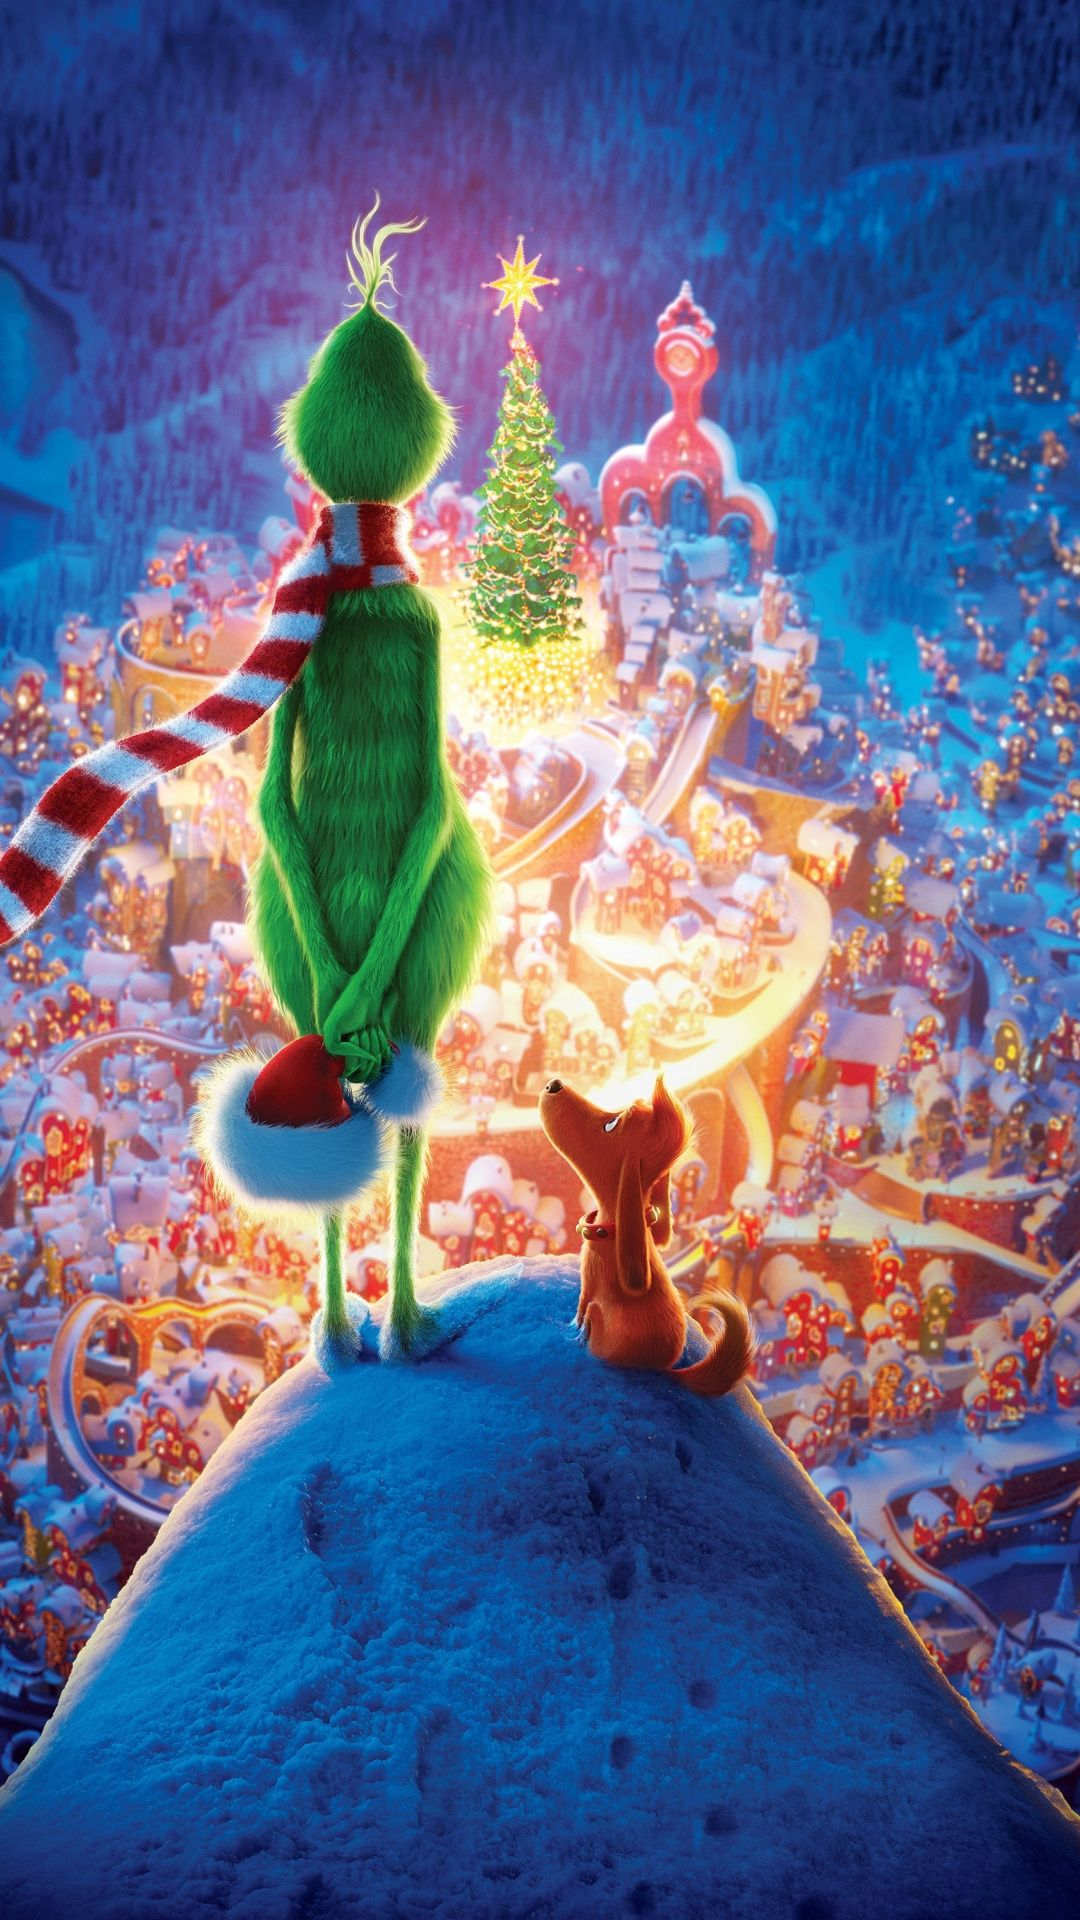 The Grinch 2018 movie Christmas 1080x1920 wallpaper in 2019 1080x1920